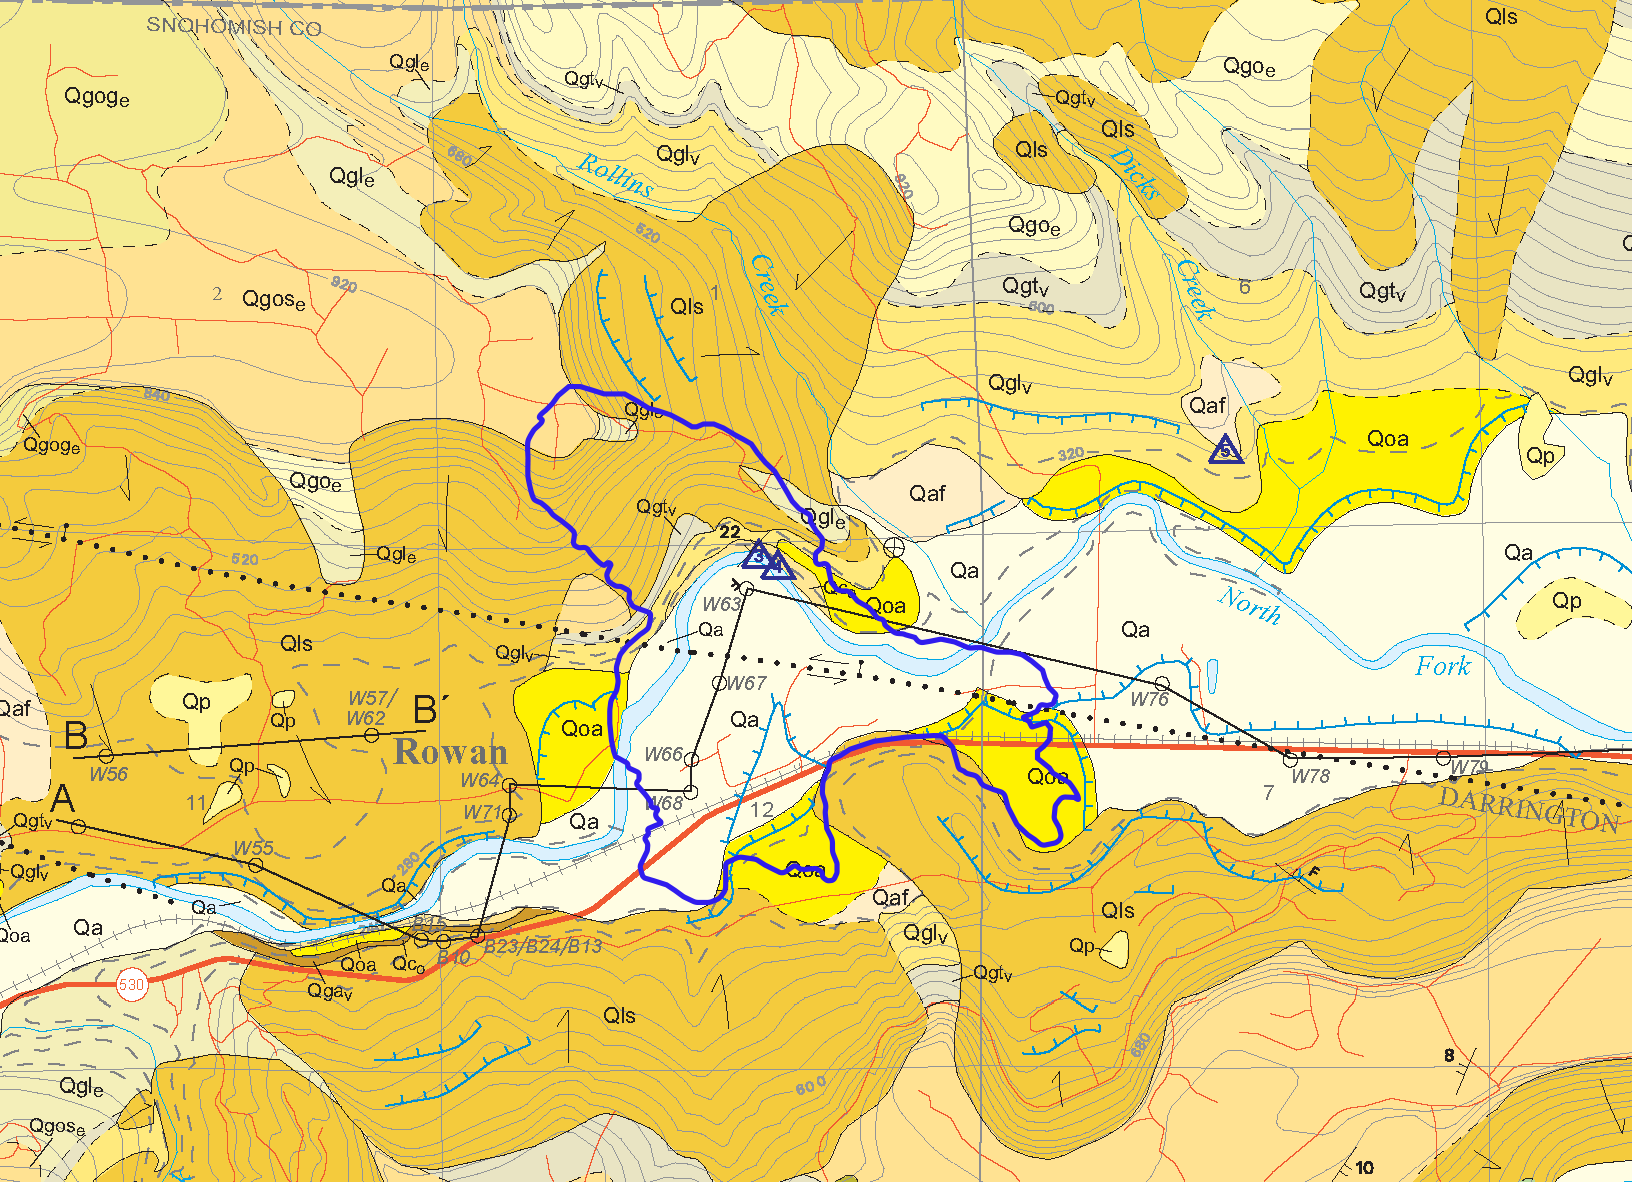 """Geologic map of the region where the Oso landslide occurred. The blue outline indicates the extent of the area moved by the landslide. The darker orange areas on the map labelled """"Qls"""" are deposits from recent landslides."""